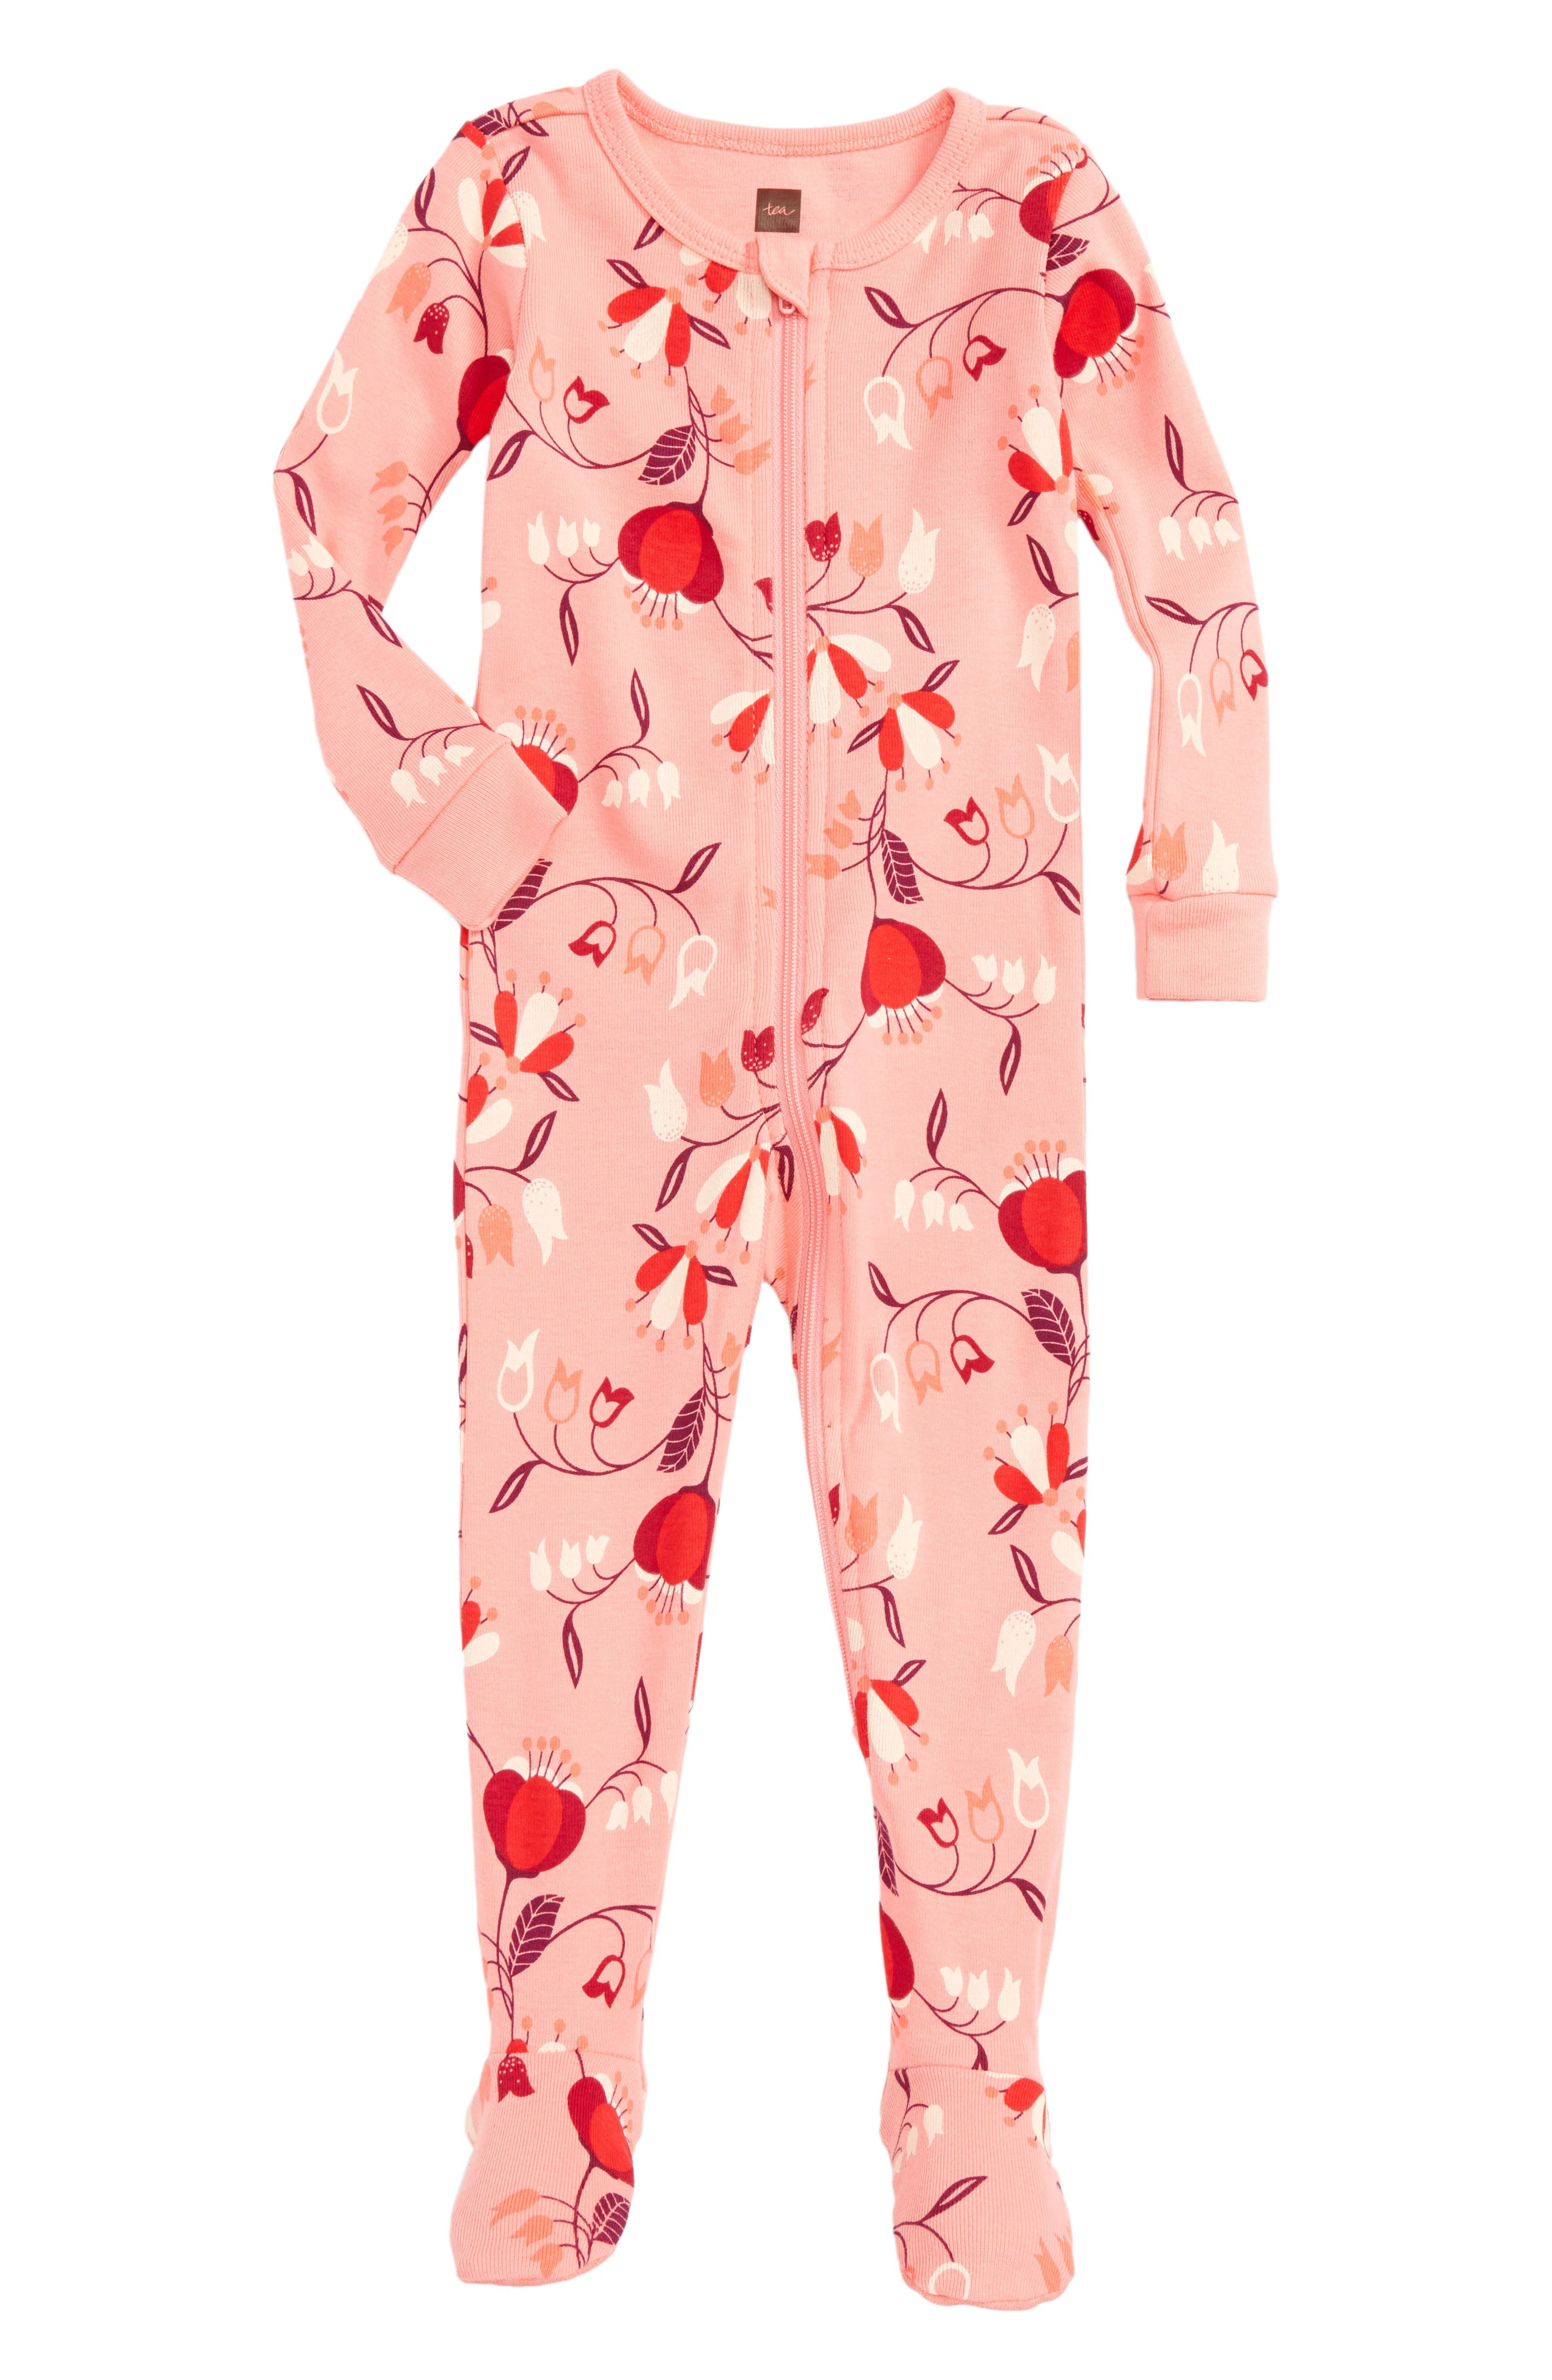 Alternate Image 1 Selected - Tea Collection Caer Fitted One-Piece Pajamas (Baby Girls)